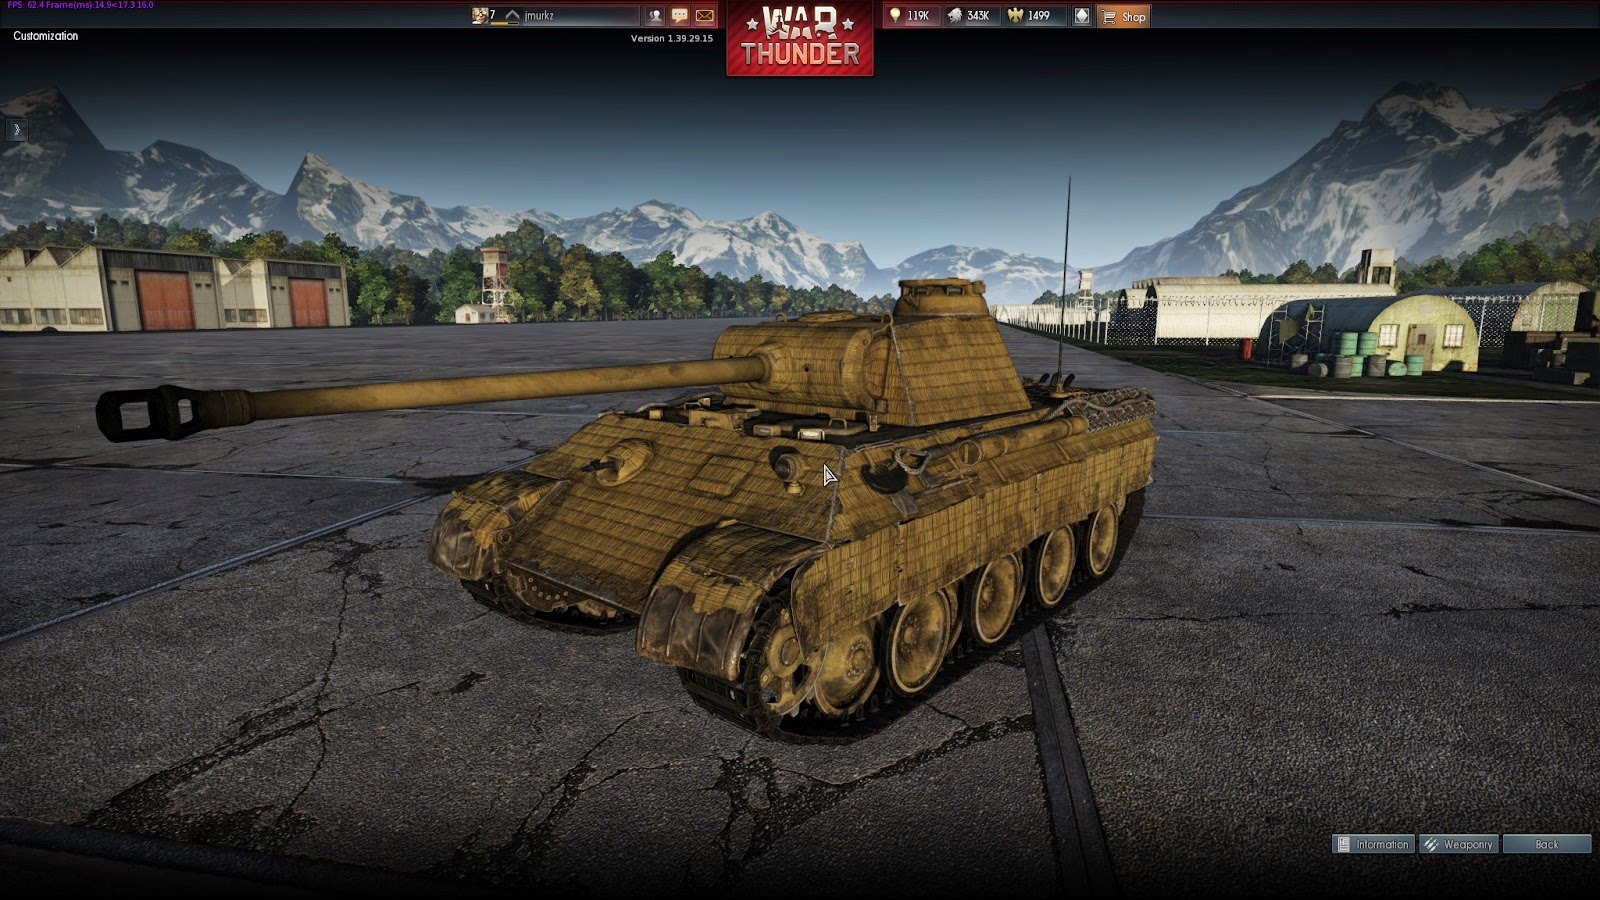 War Thunder CBT on Public Server Shot+2014.04.22+21.42.35